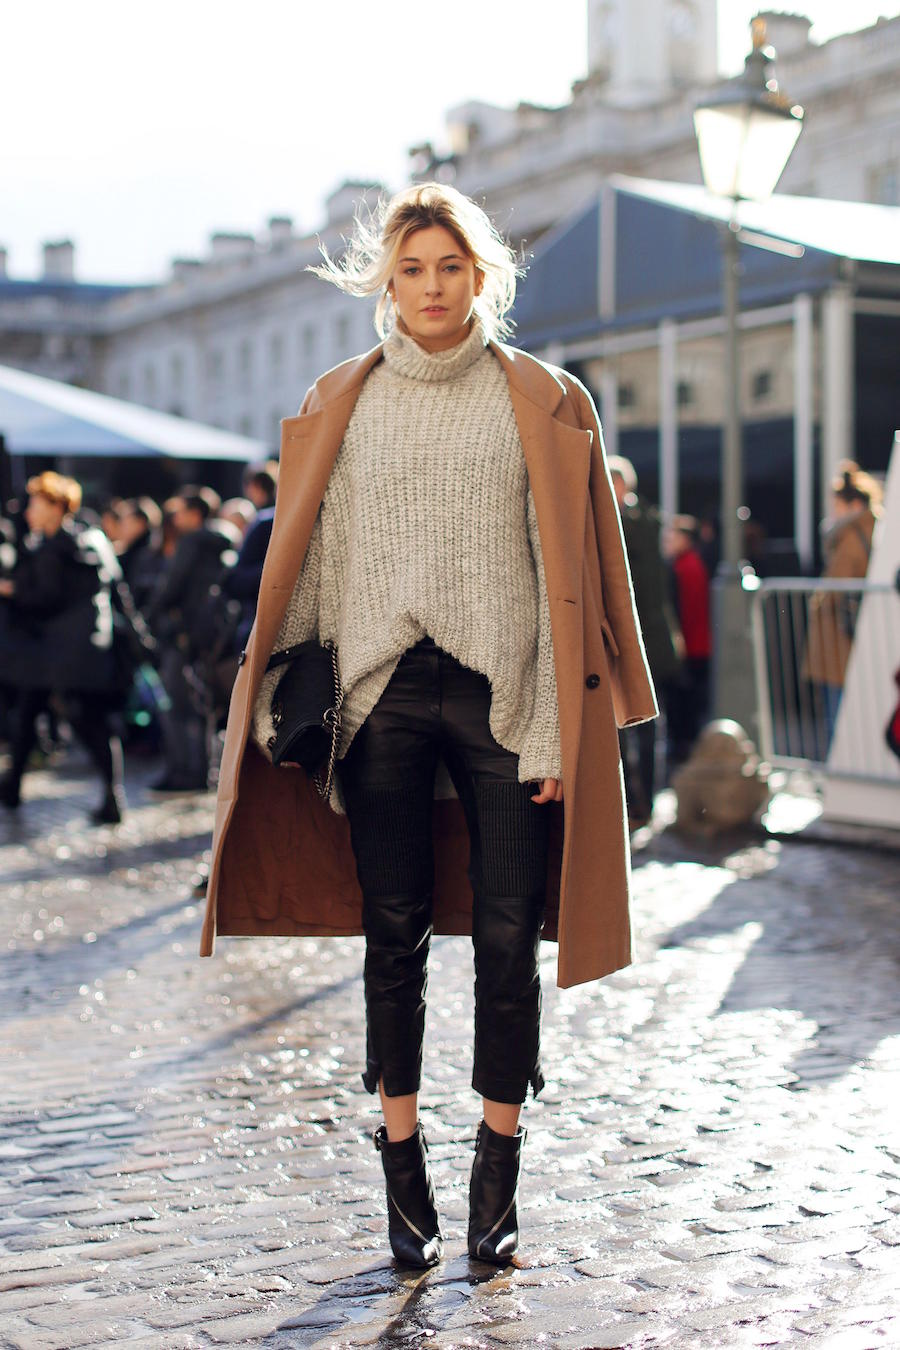 Top 5 Style Hacks for Winter